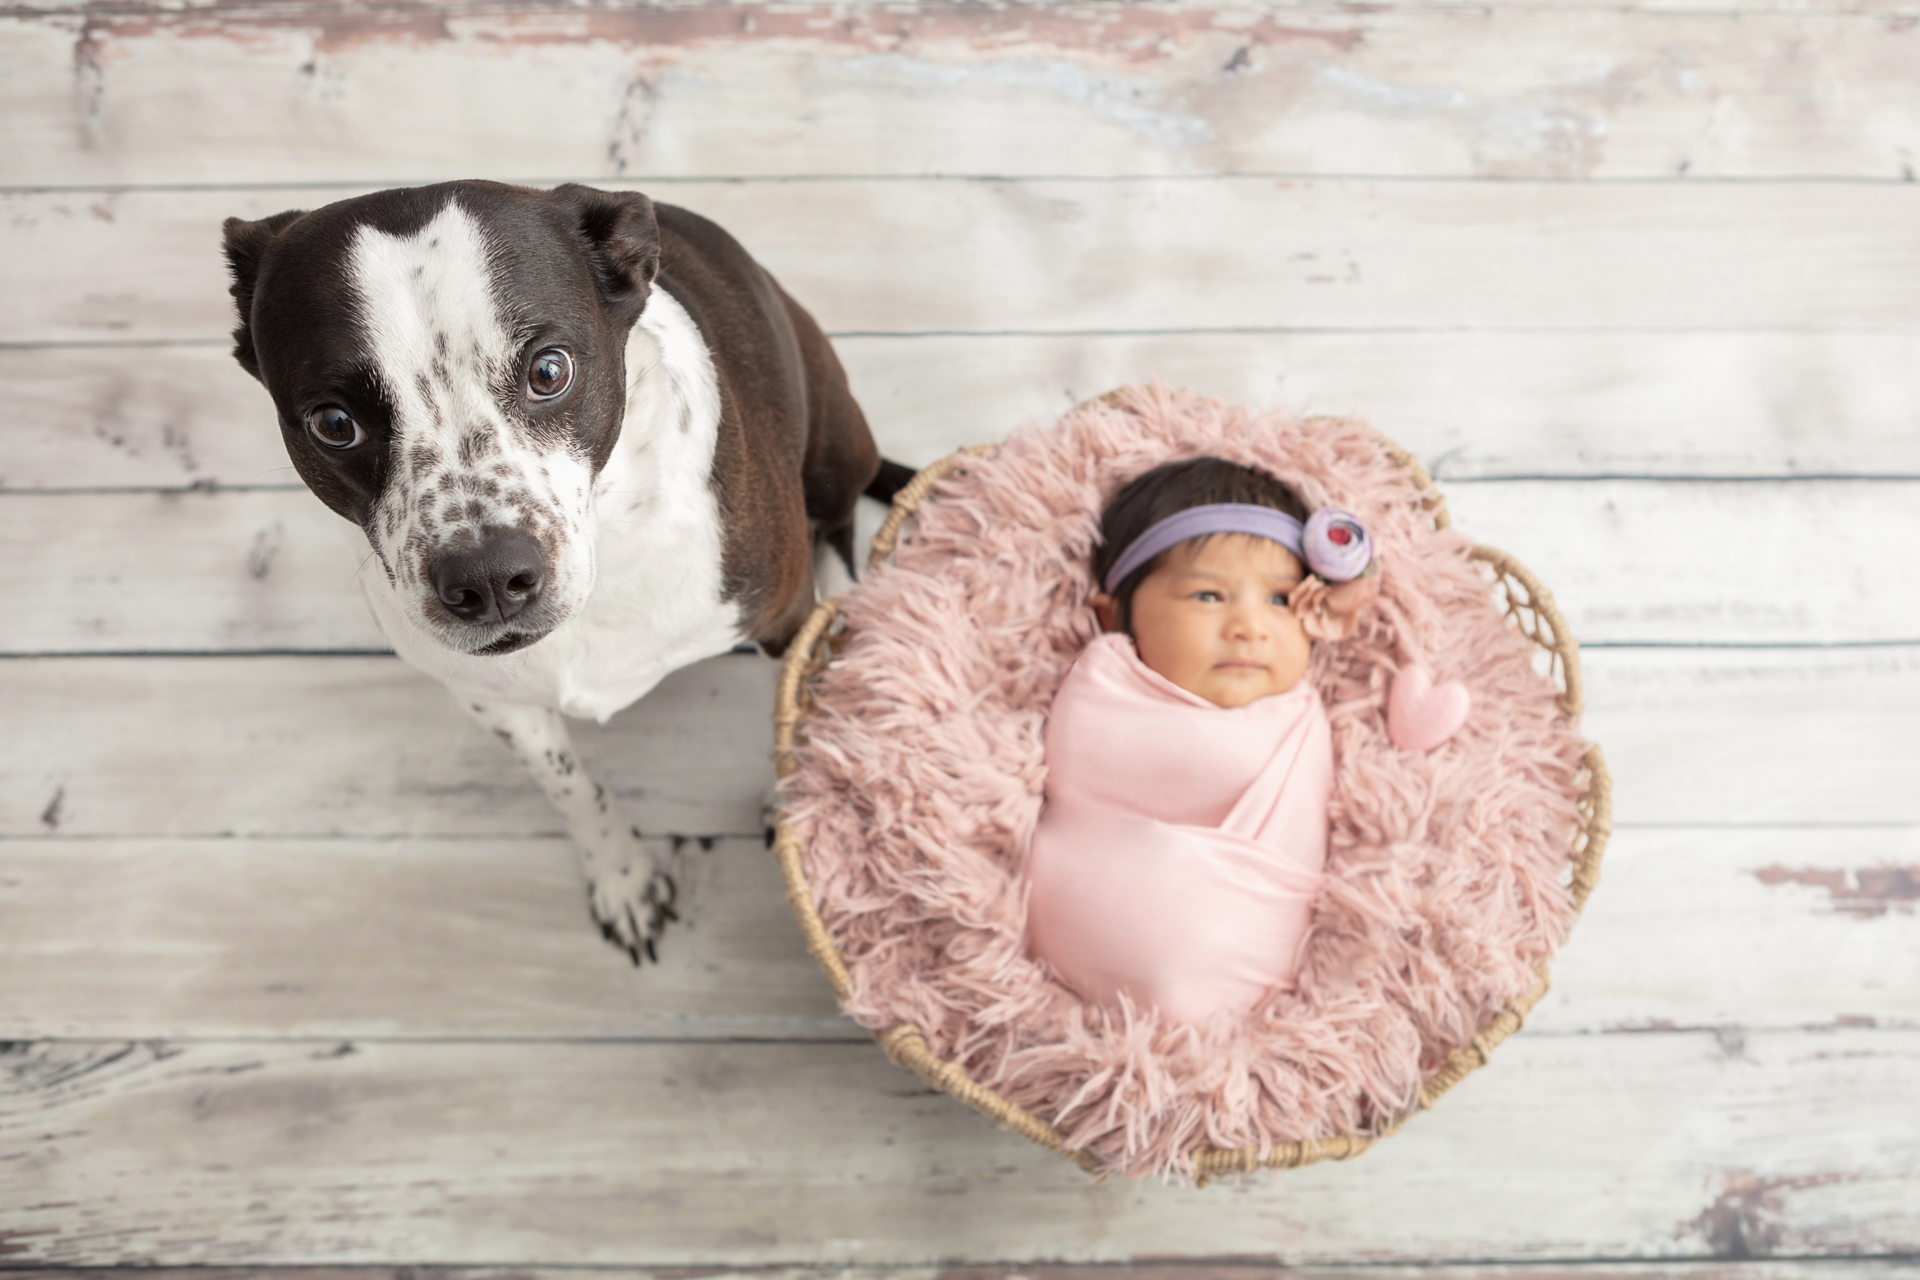 Boston Terrier cattle dog mix with his new baby sister who is wrapped in light pink